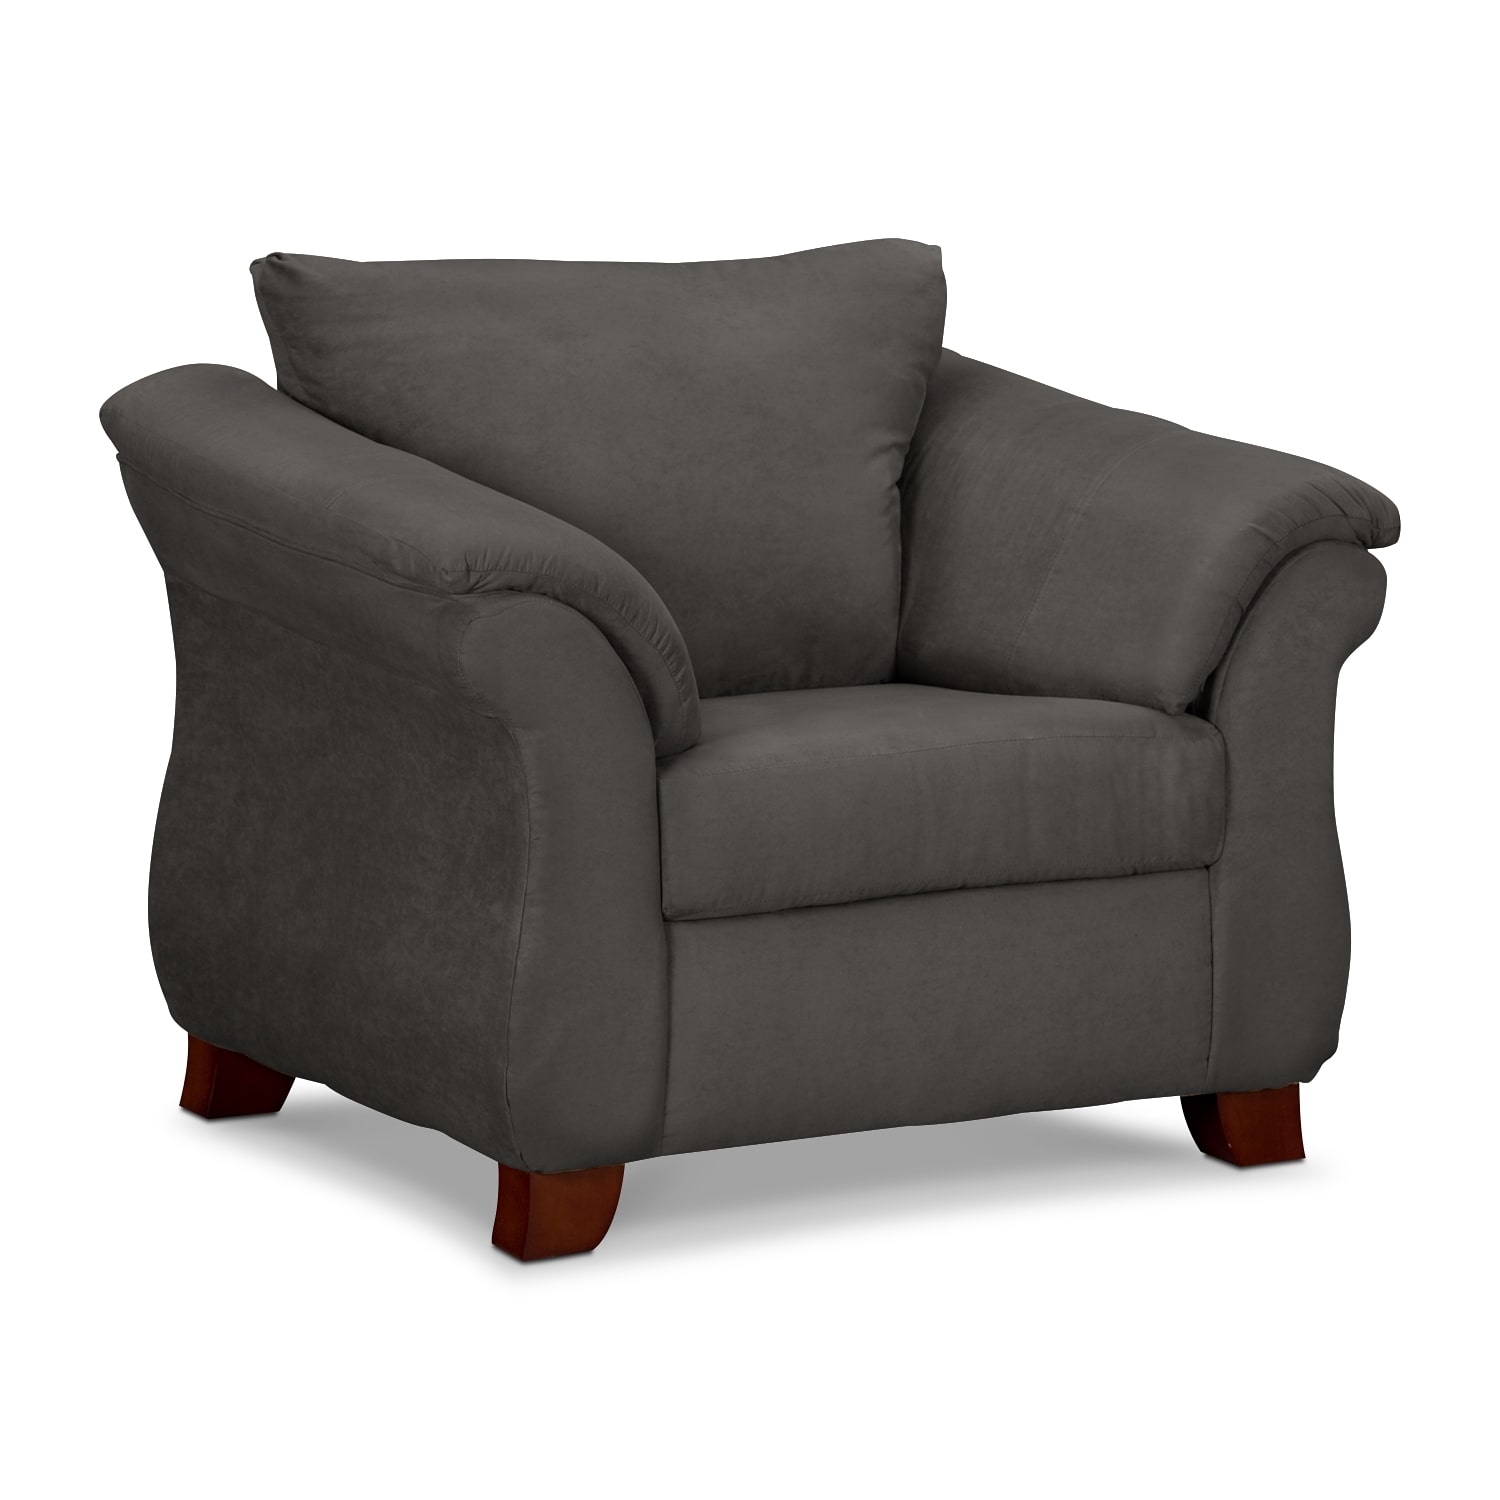 Adrian Graphite Chair